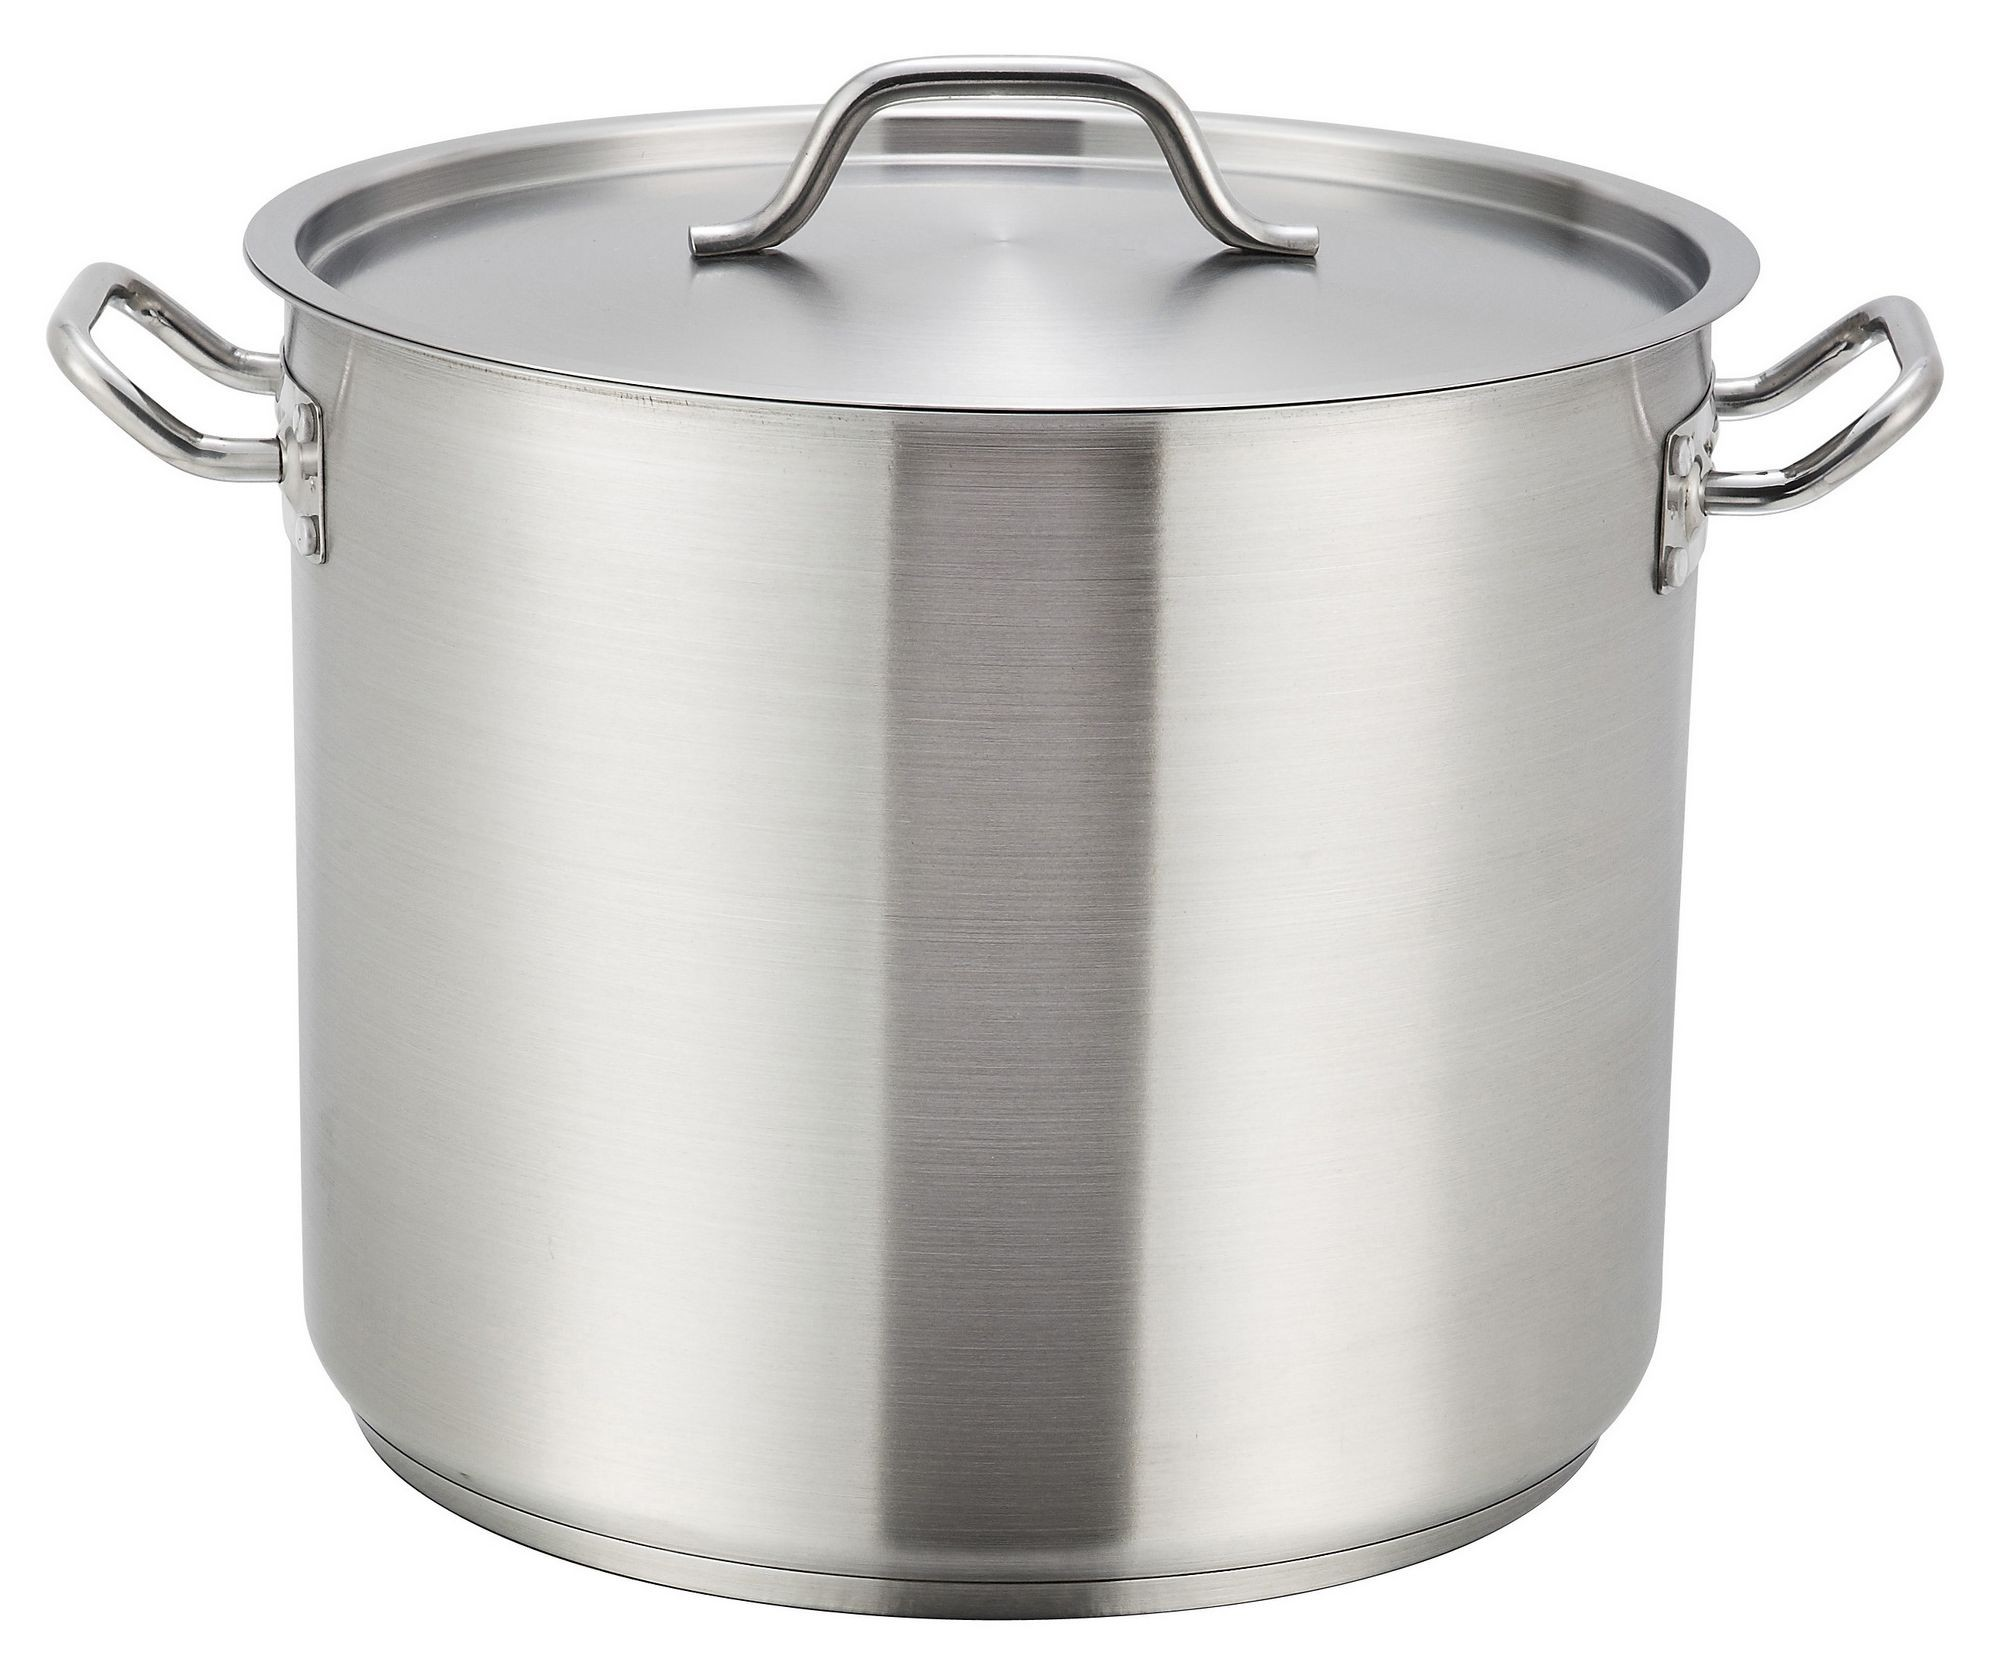 Winco SST-8 Premium Induction Stainless Steel 8 Qt. Stock Pot